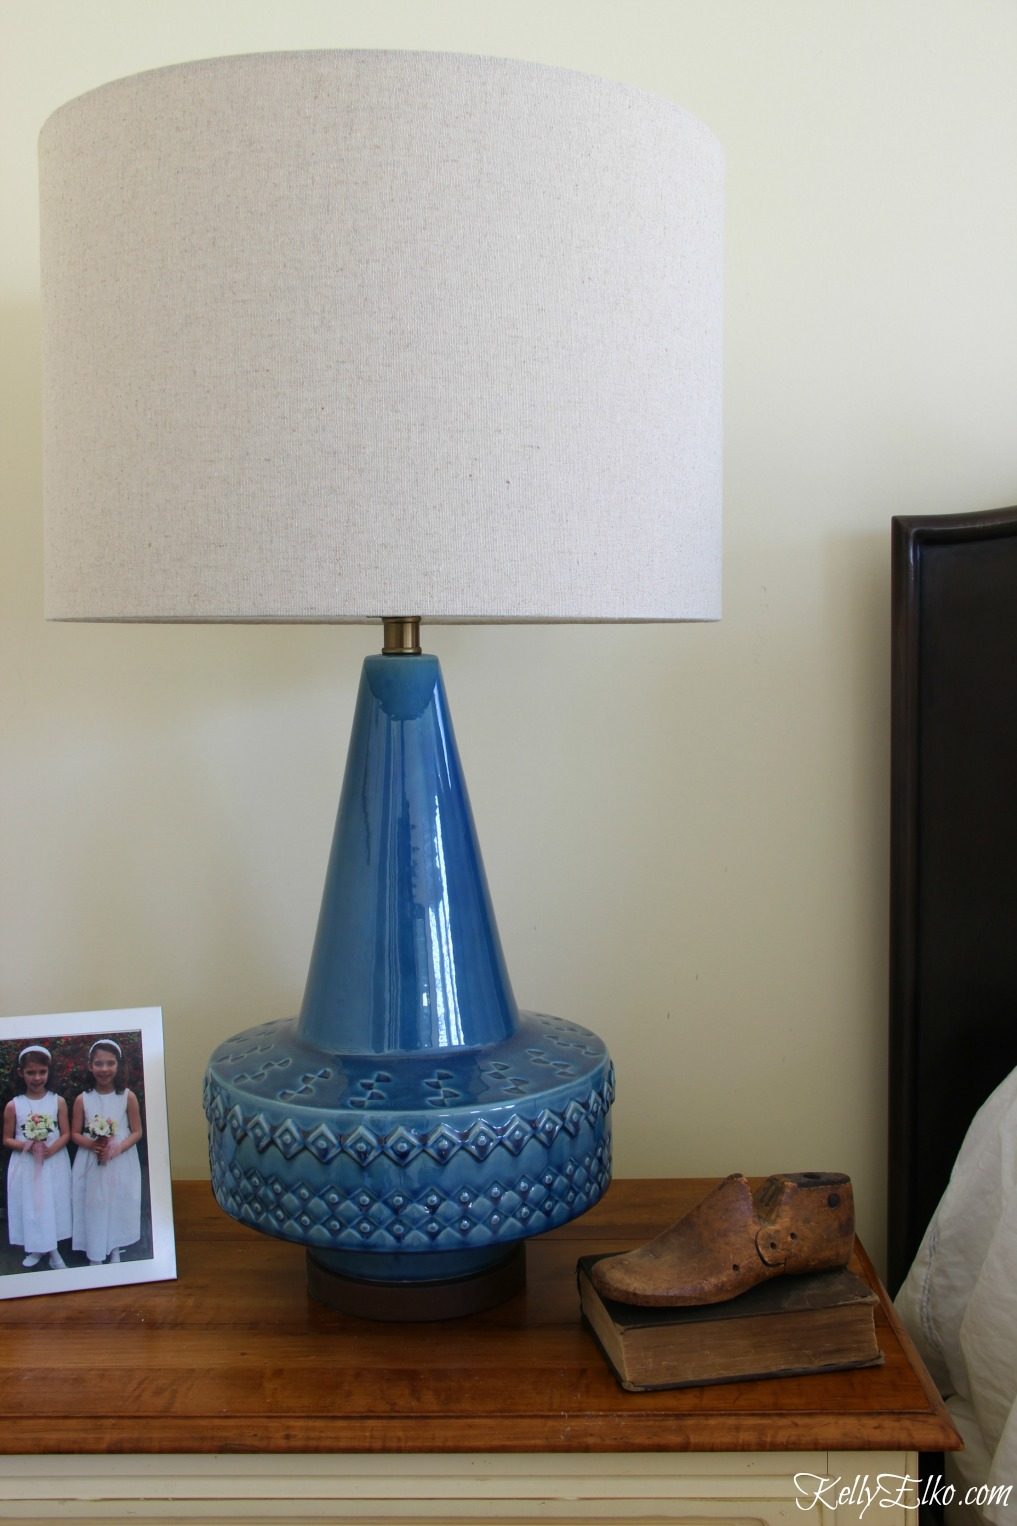 Love this mid century lamp repro - the size, shape and color are amazing! kellyelko.com